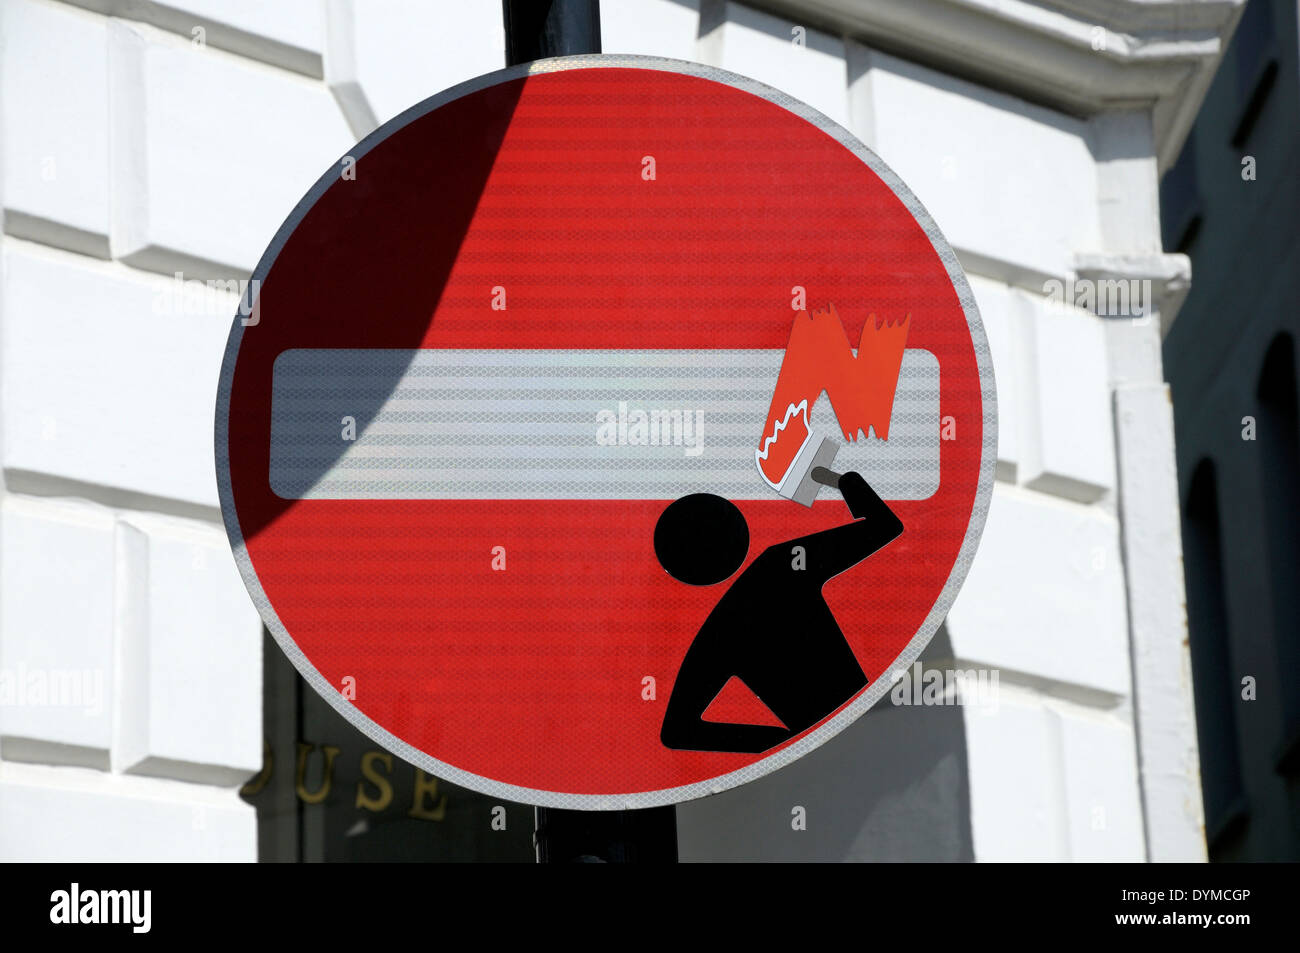 London, England, UK. Defaced traffic sign 'No Entry' in central London (2014) -  by artist Clet Abraham - Stock Image